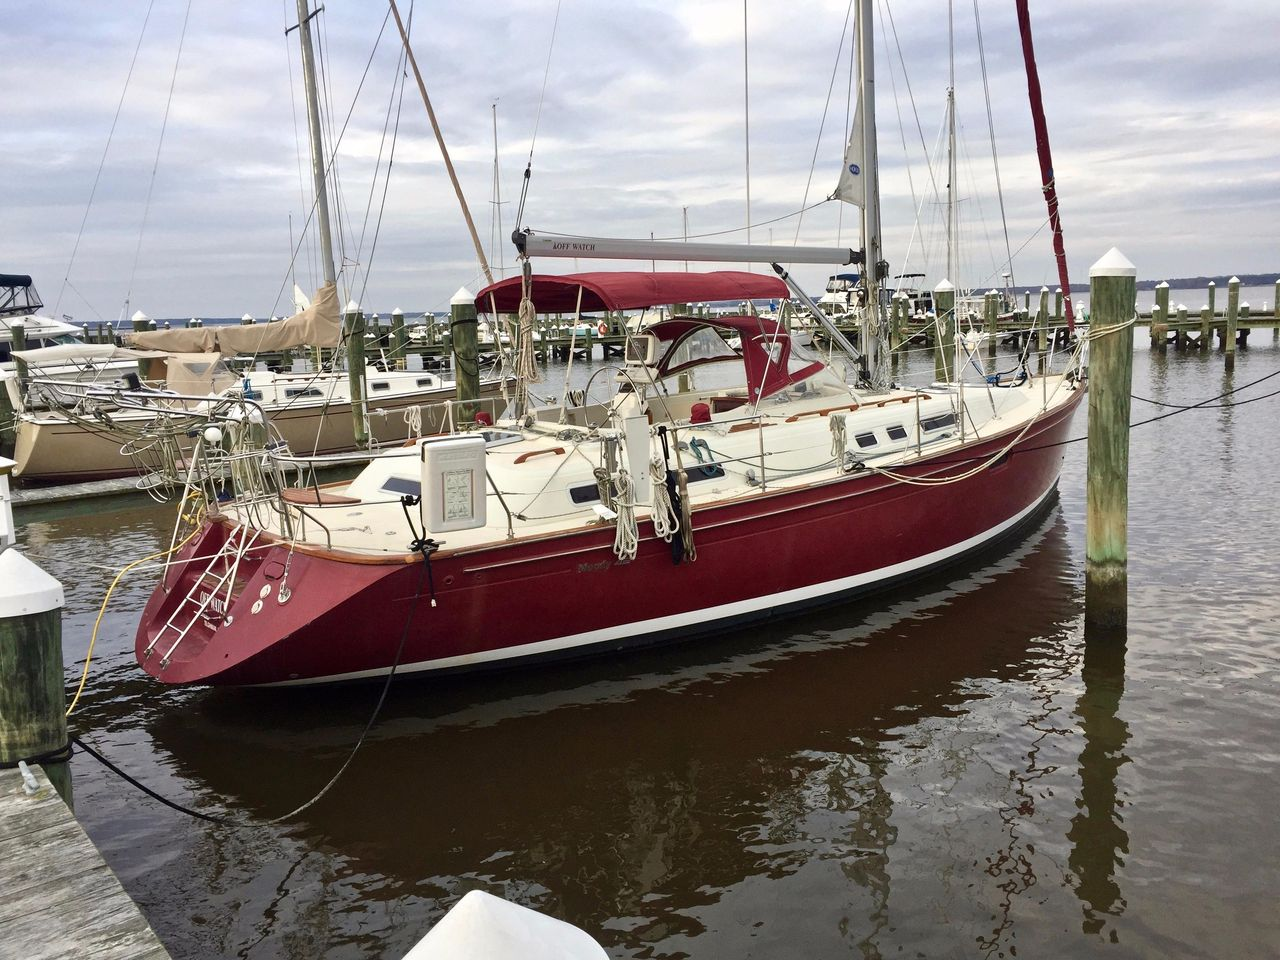 2000 Used Moody 42 Cruiser Sailboat For Sale - $122,700 - Cambridge